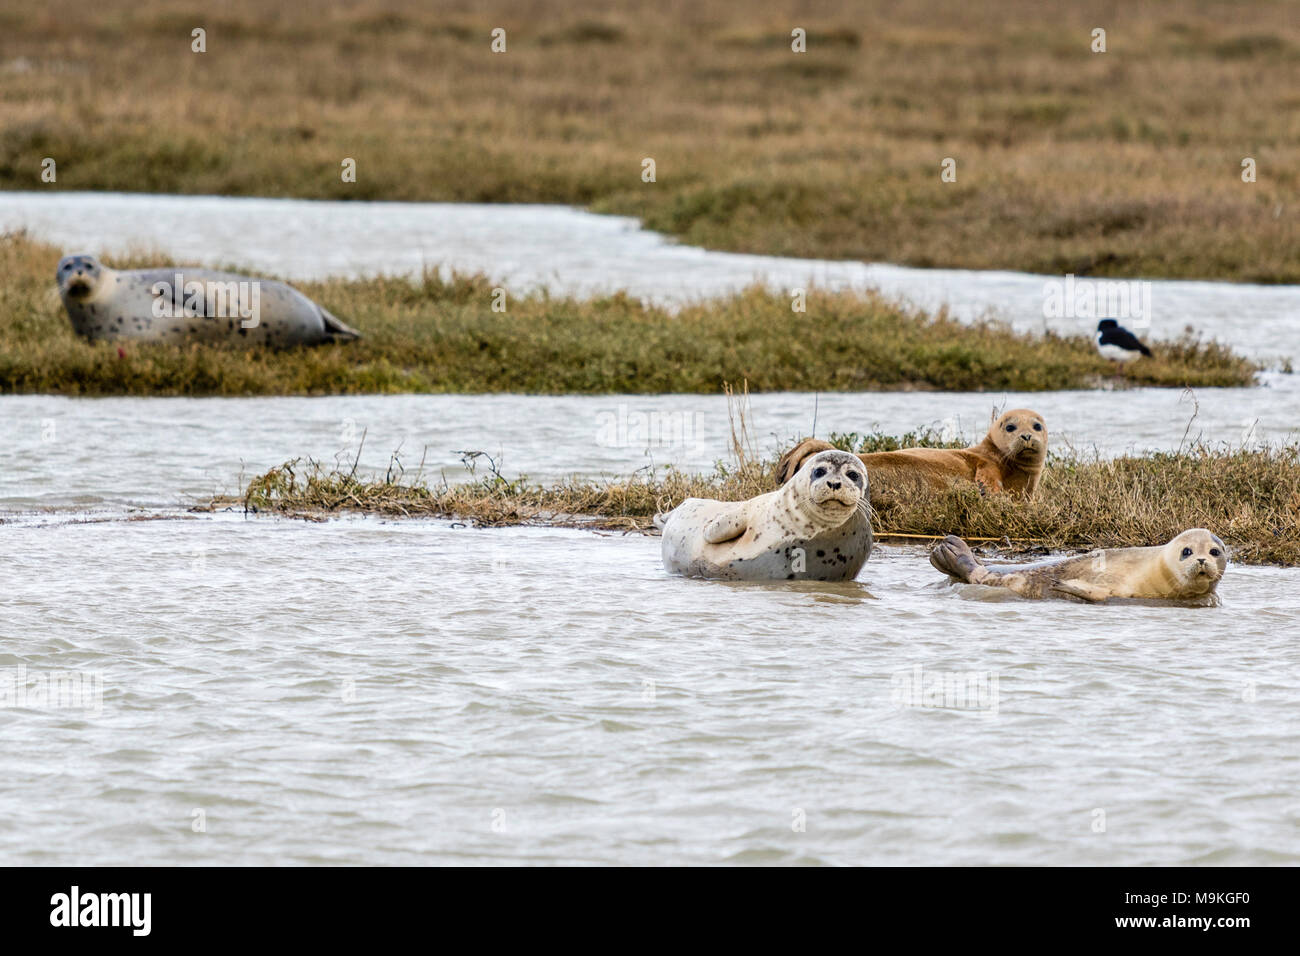 England, Sandwich. Seals basking on marshes at River Stour estuary. Overcast weather. - Stock Image